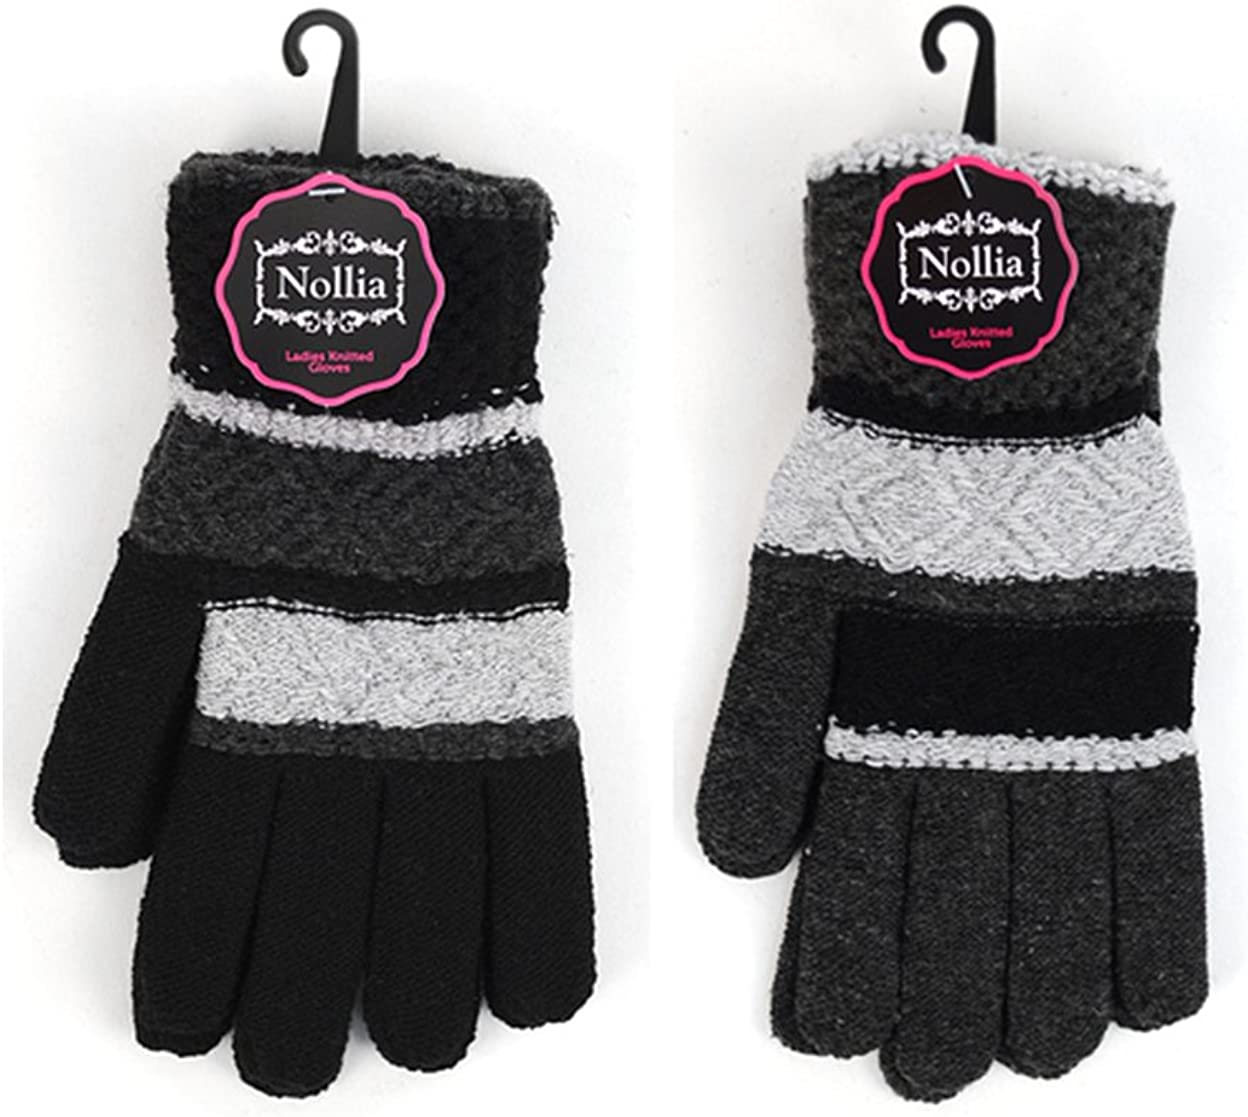 It's Still COLD Out There! Set of 2 Women's Winter Gloves~ Black & Gray Stripes~Stretchable Wrist~for Medium to Large Hands